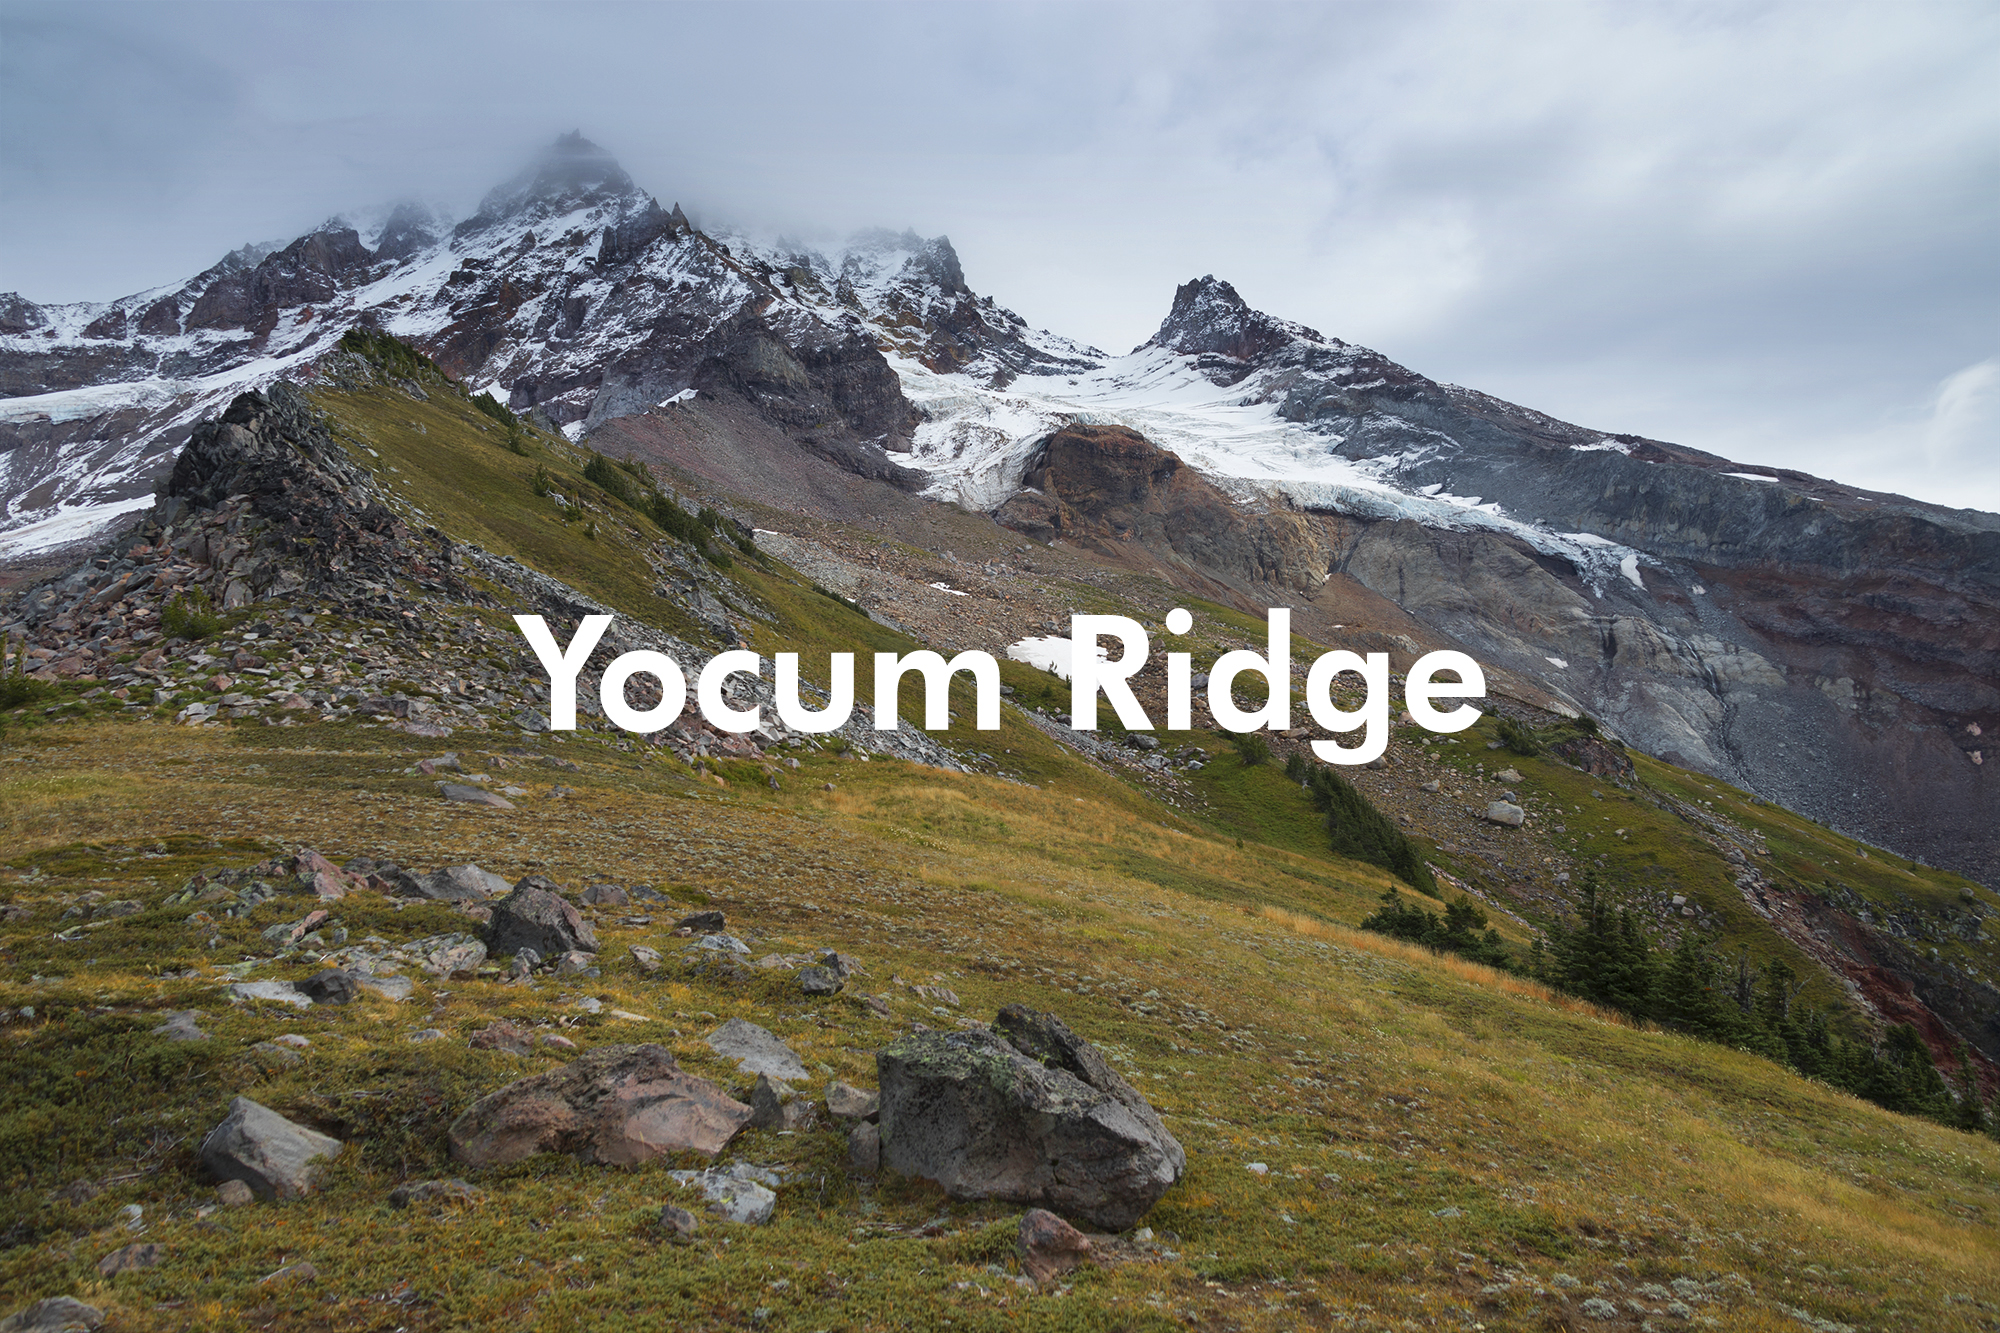 Yocum Ridge, Mt. Hood, Oregon - September 2019